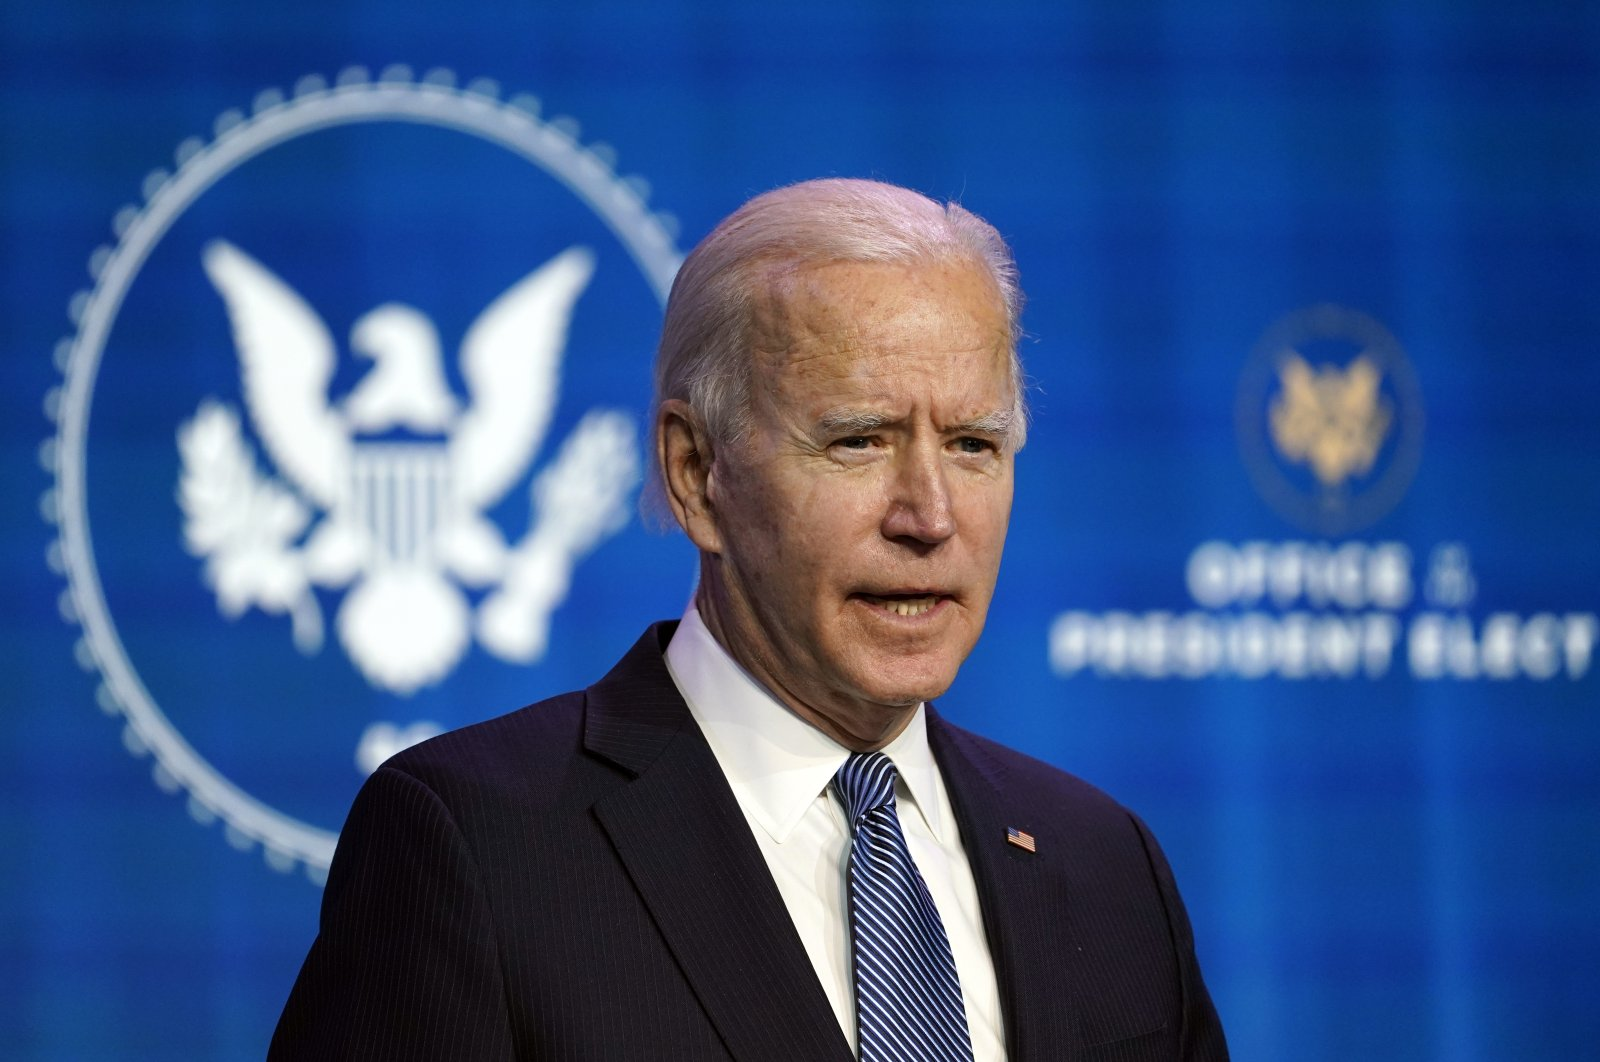 U.S. President-elect Joe Biden speaks during an event at The Queen Theater to announce key nominees for the Justice Department, in Wilmington, Delaware, U.S., Jan. 7, 2021. (AP Photo)